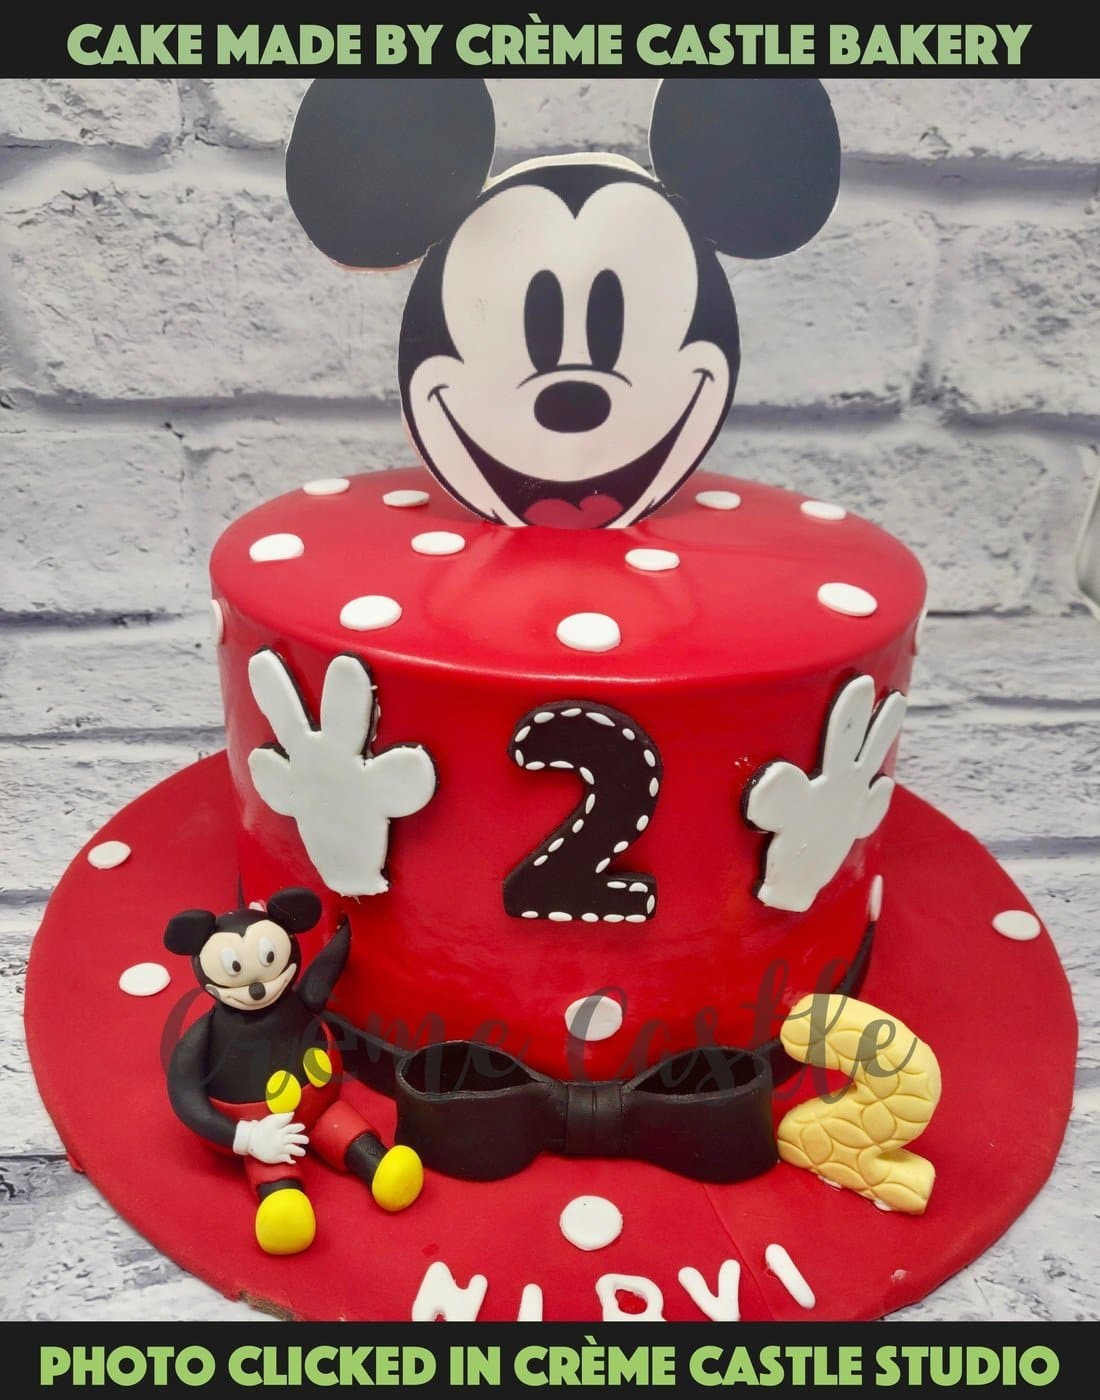 A typical Mickey Mouse theme cake with in red colour with Mickey face on top and hand crafted mickey mouse chilling at the bottom of the cake